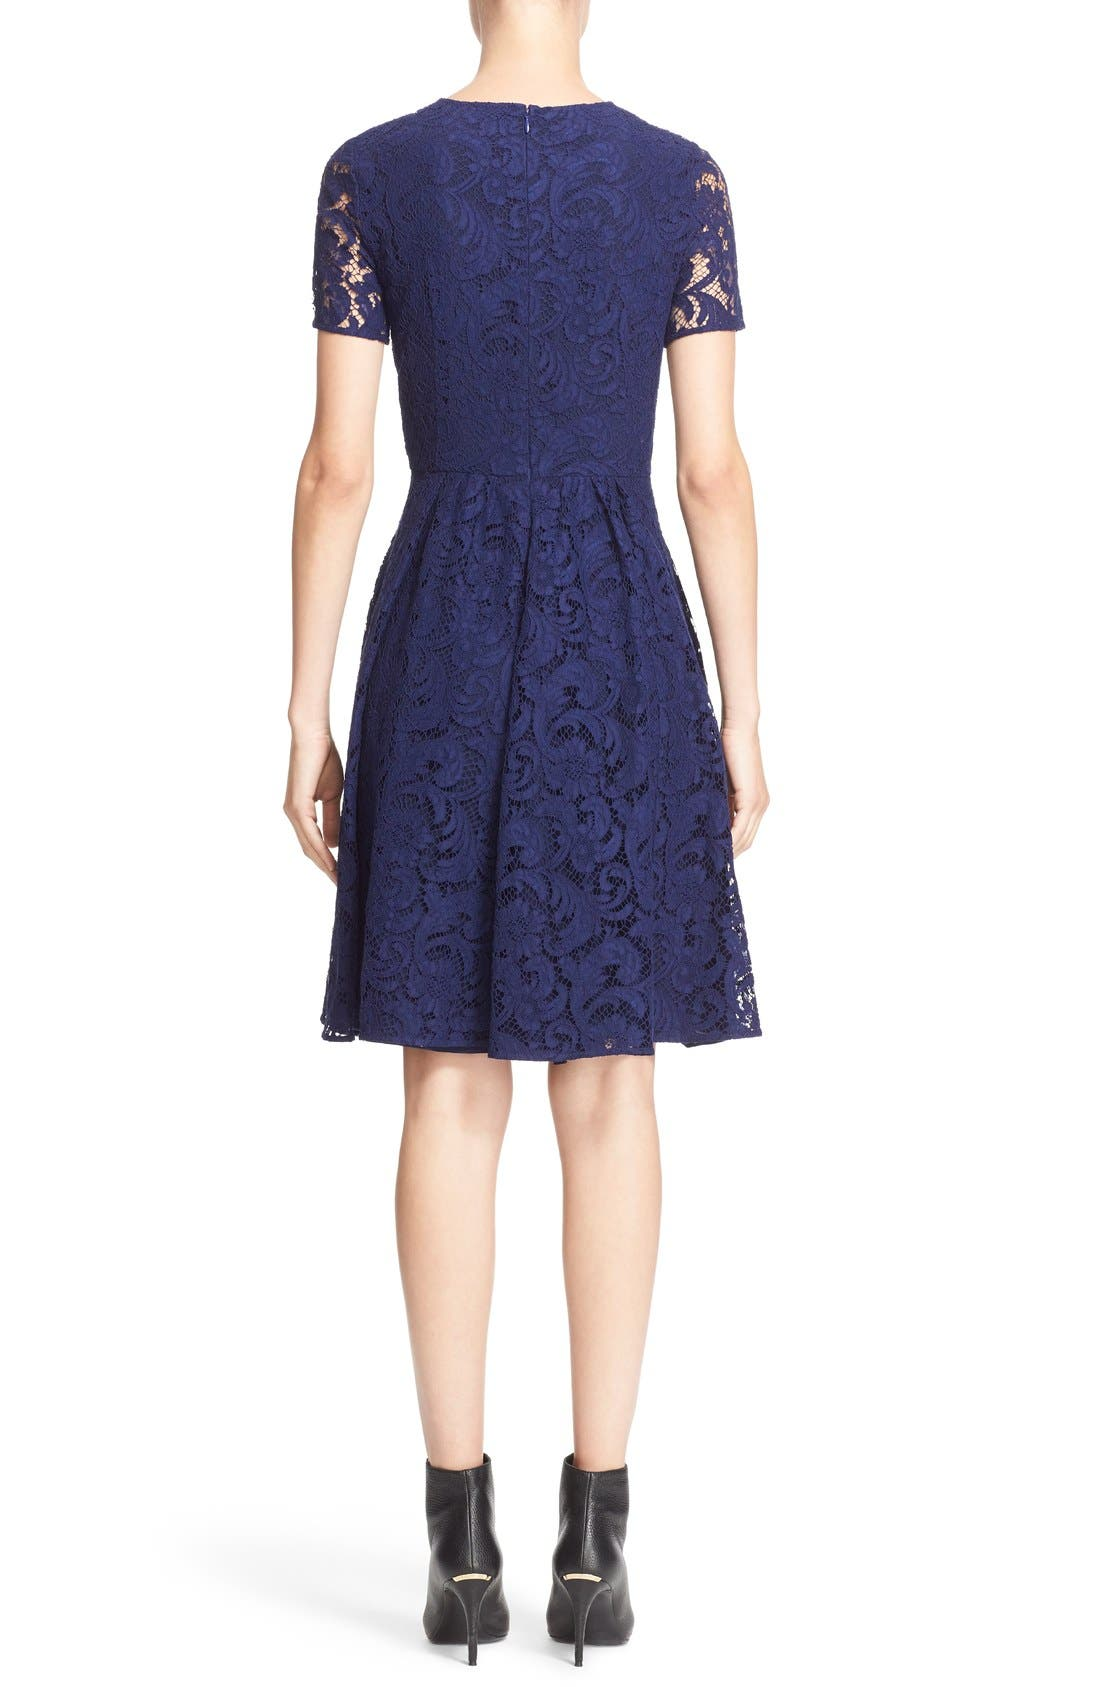 BURBERRY LONDON,                             'Alice' Short Sleeve Corded Lace Fit & Flare Dress,                             Alternate thumbnail 3, color,                             495